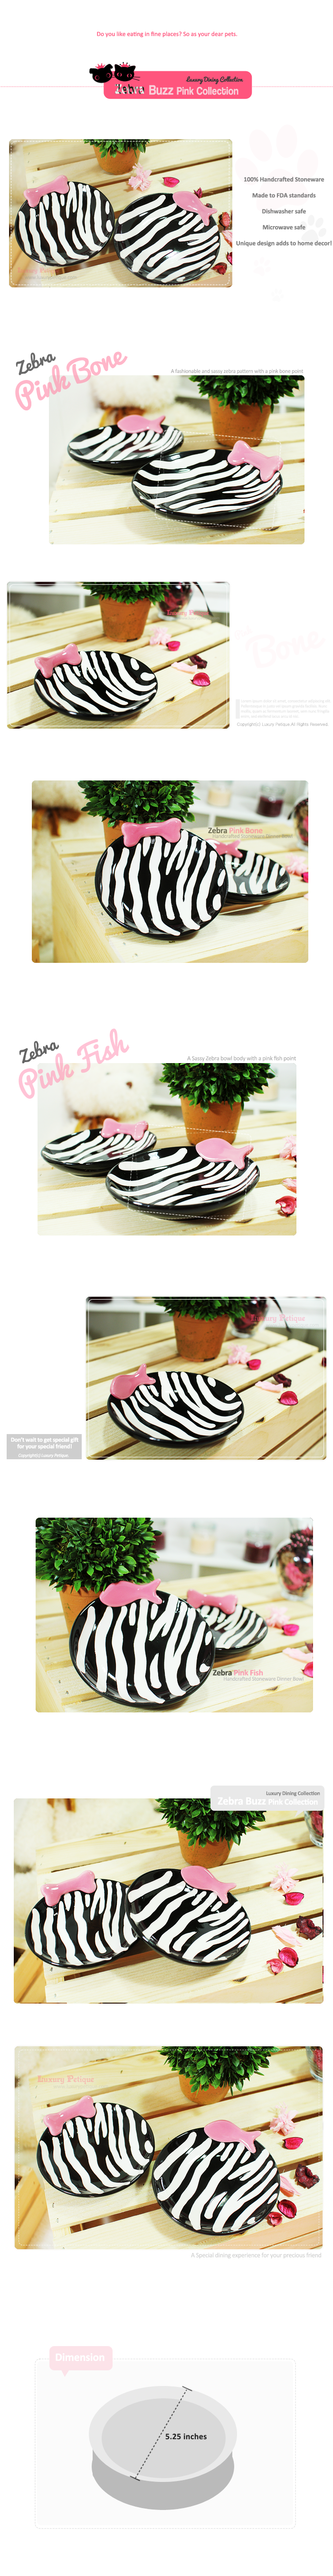 zebra-buzz-pink-collection.png